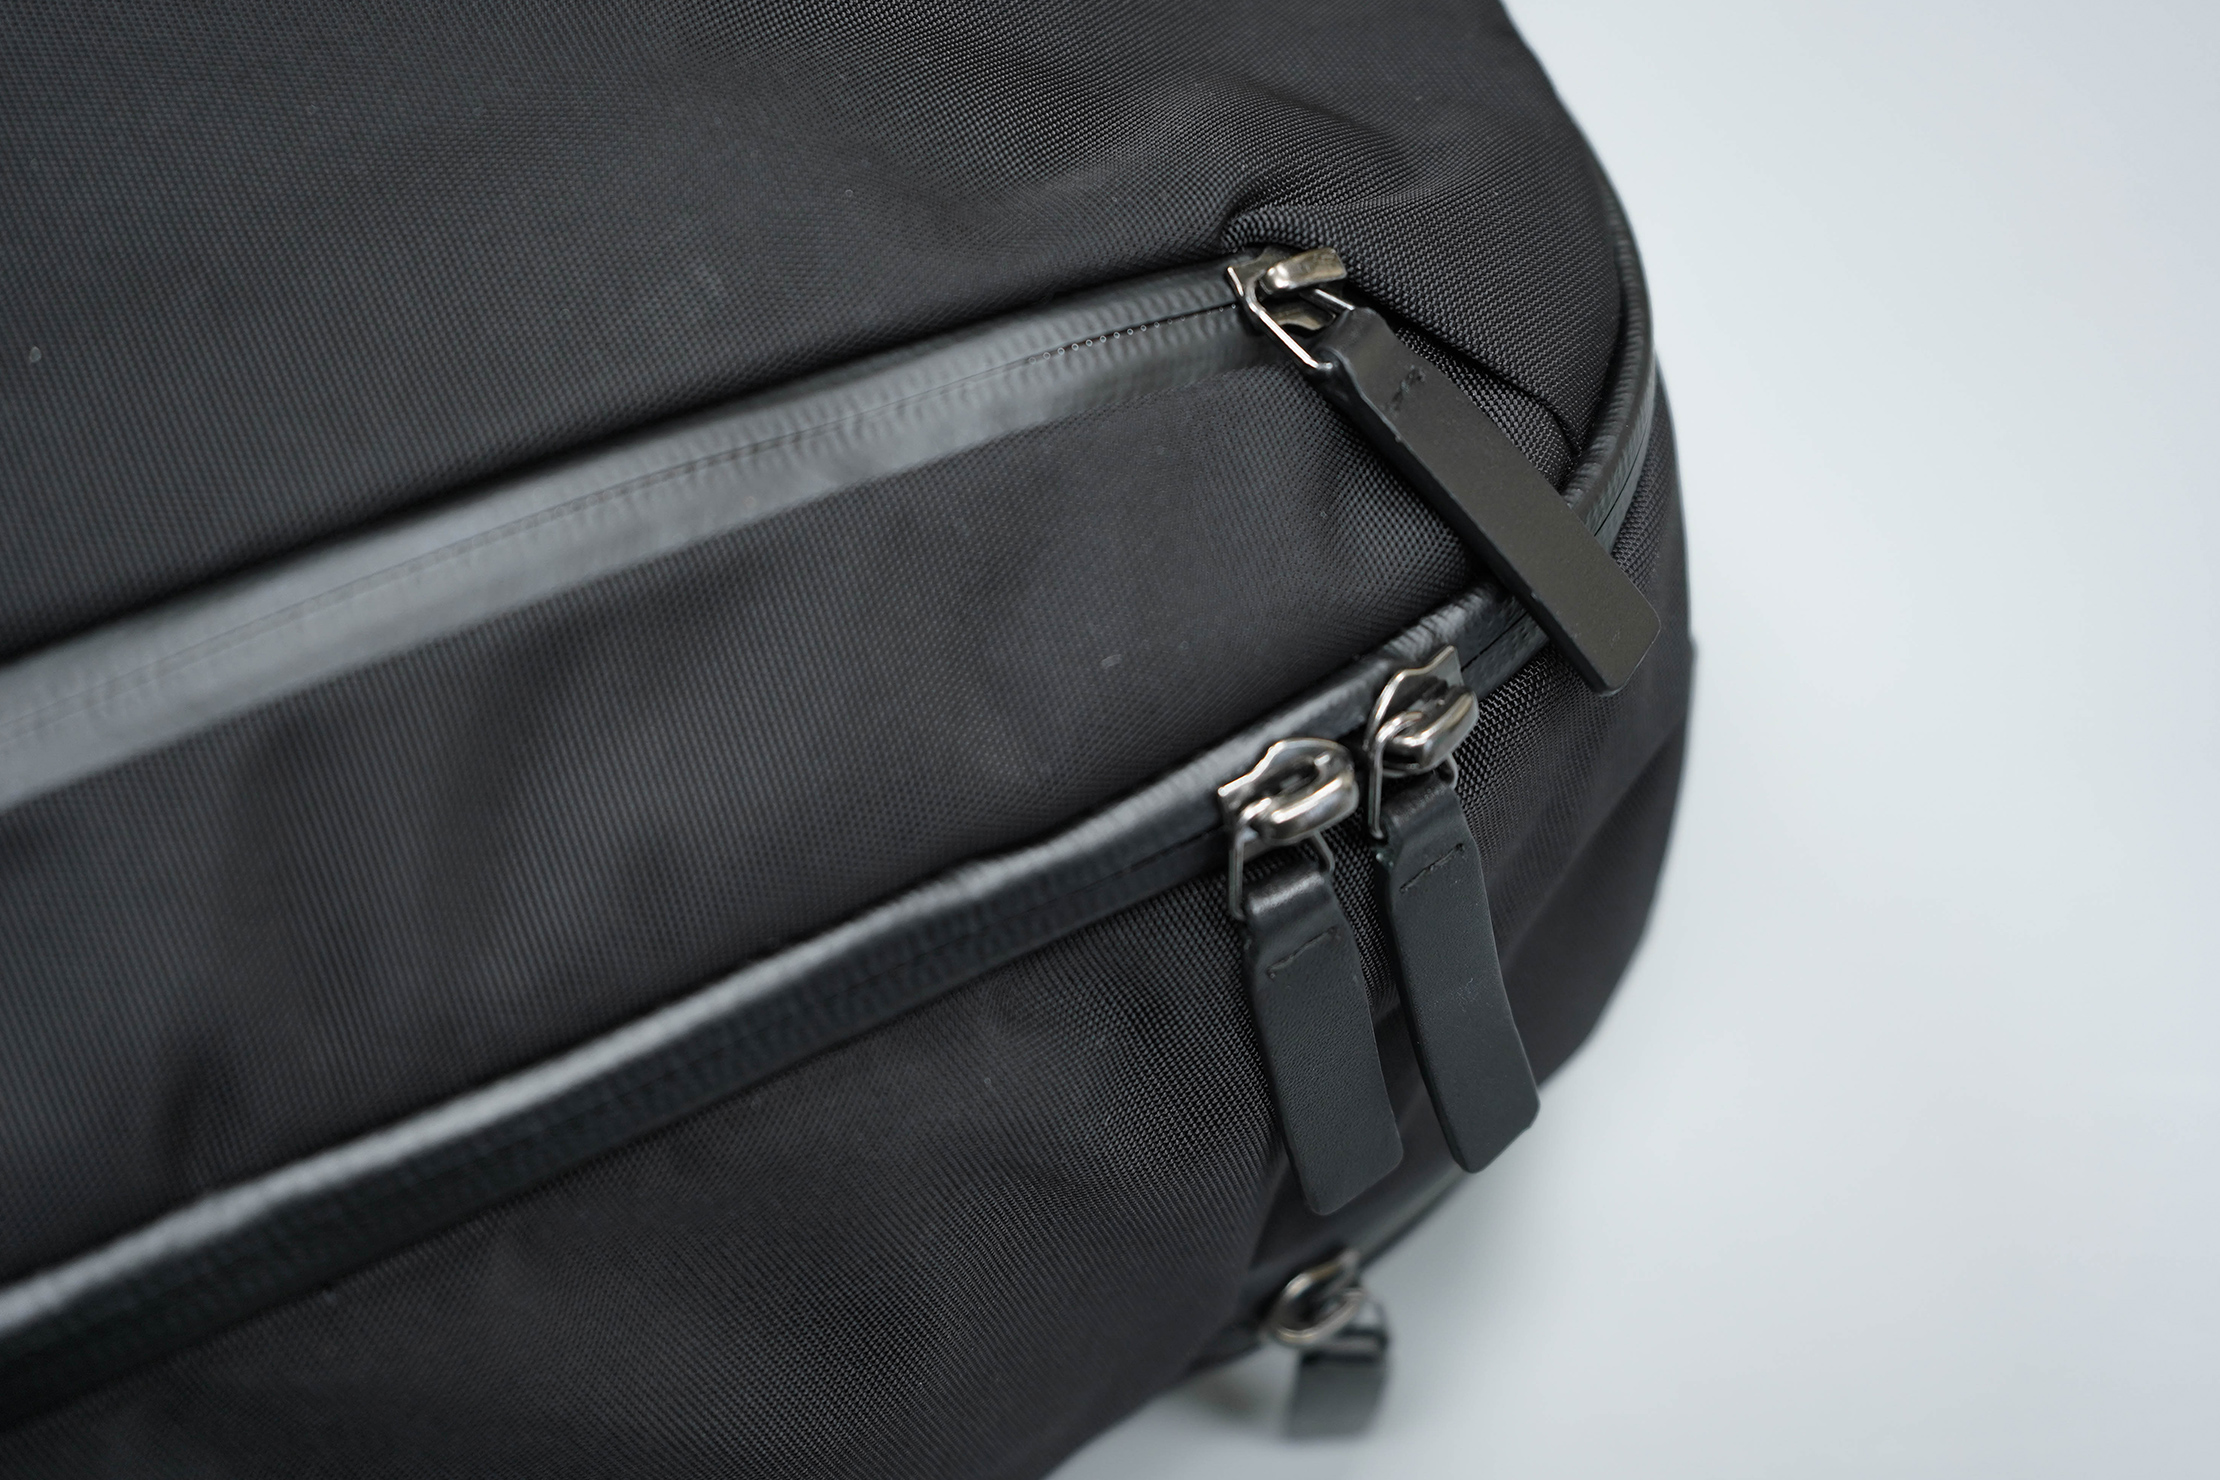 Bellroy Transit Backpack Zippers